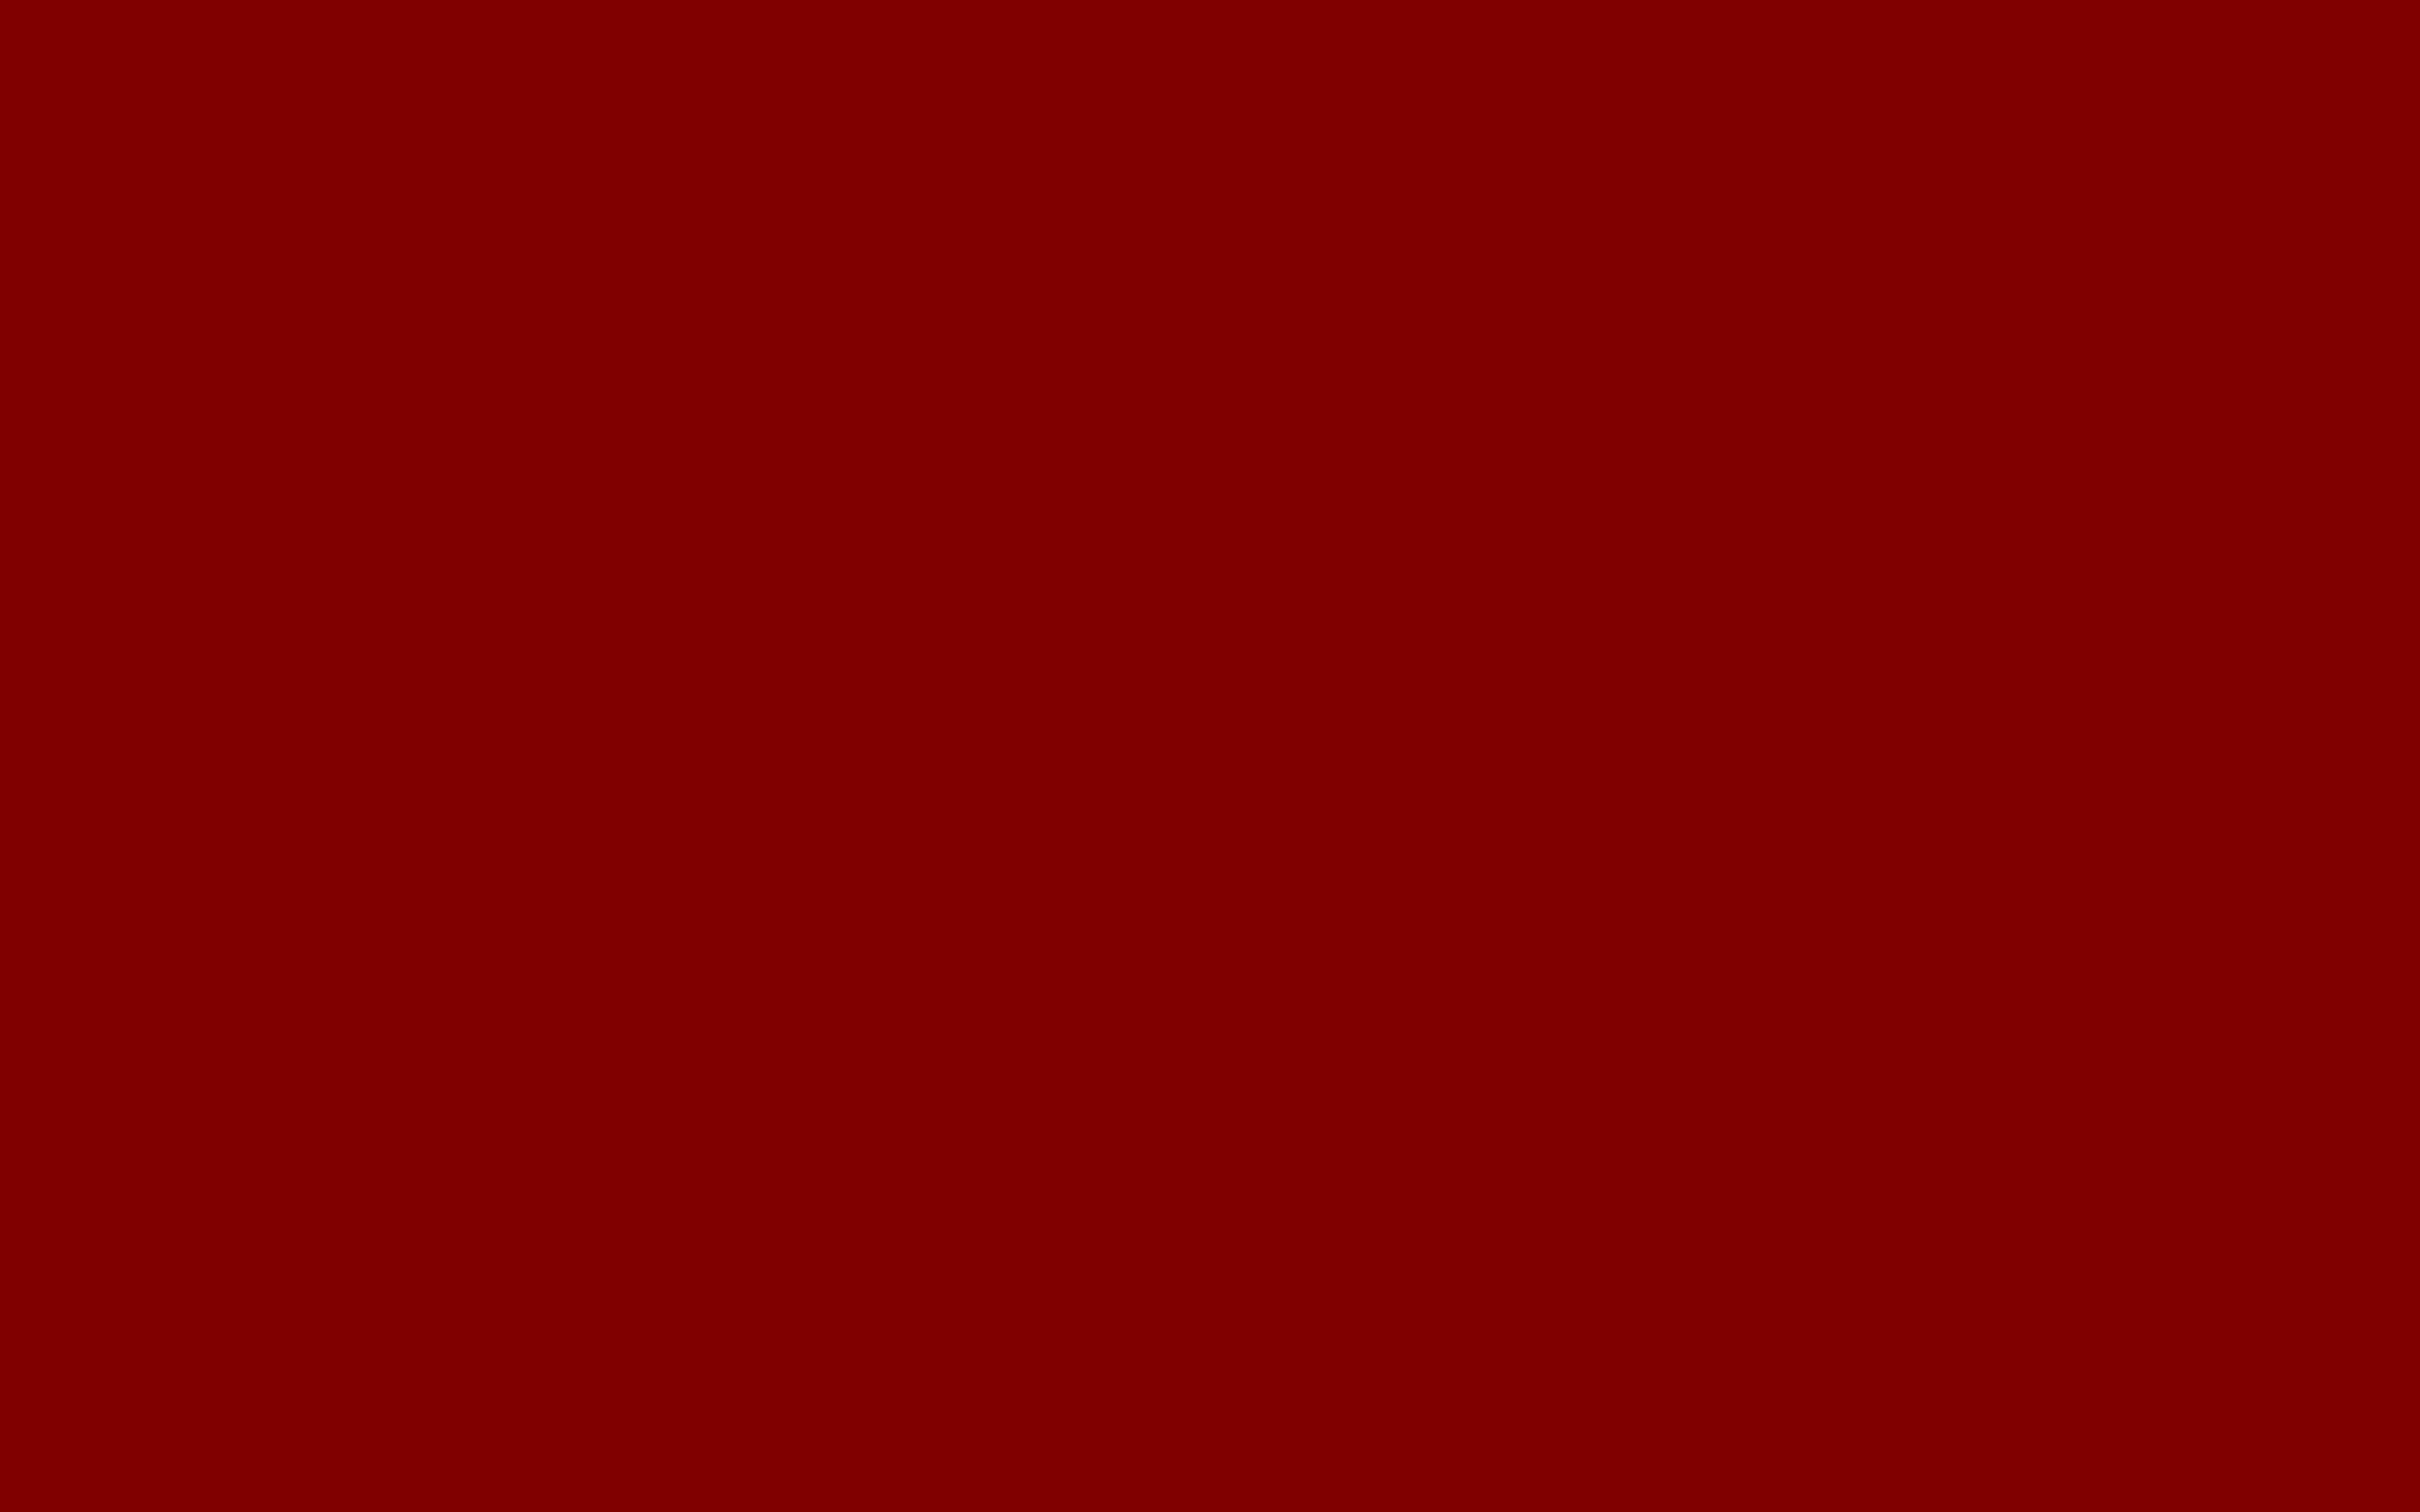 2560x1600 Maroon Web Solid Color Background